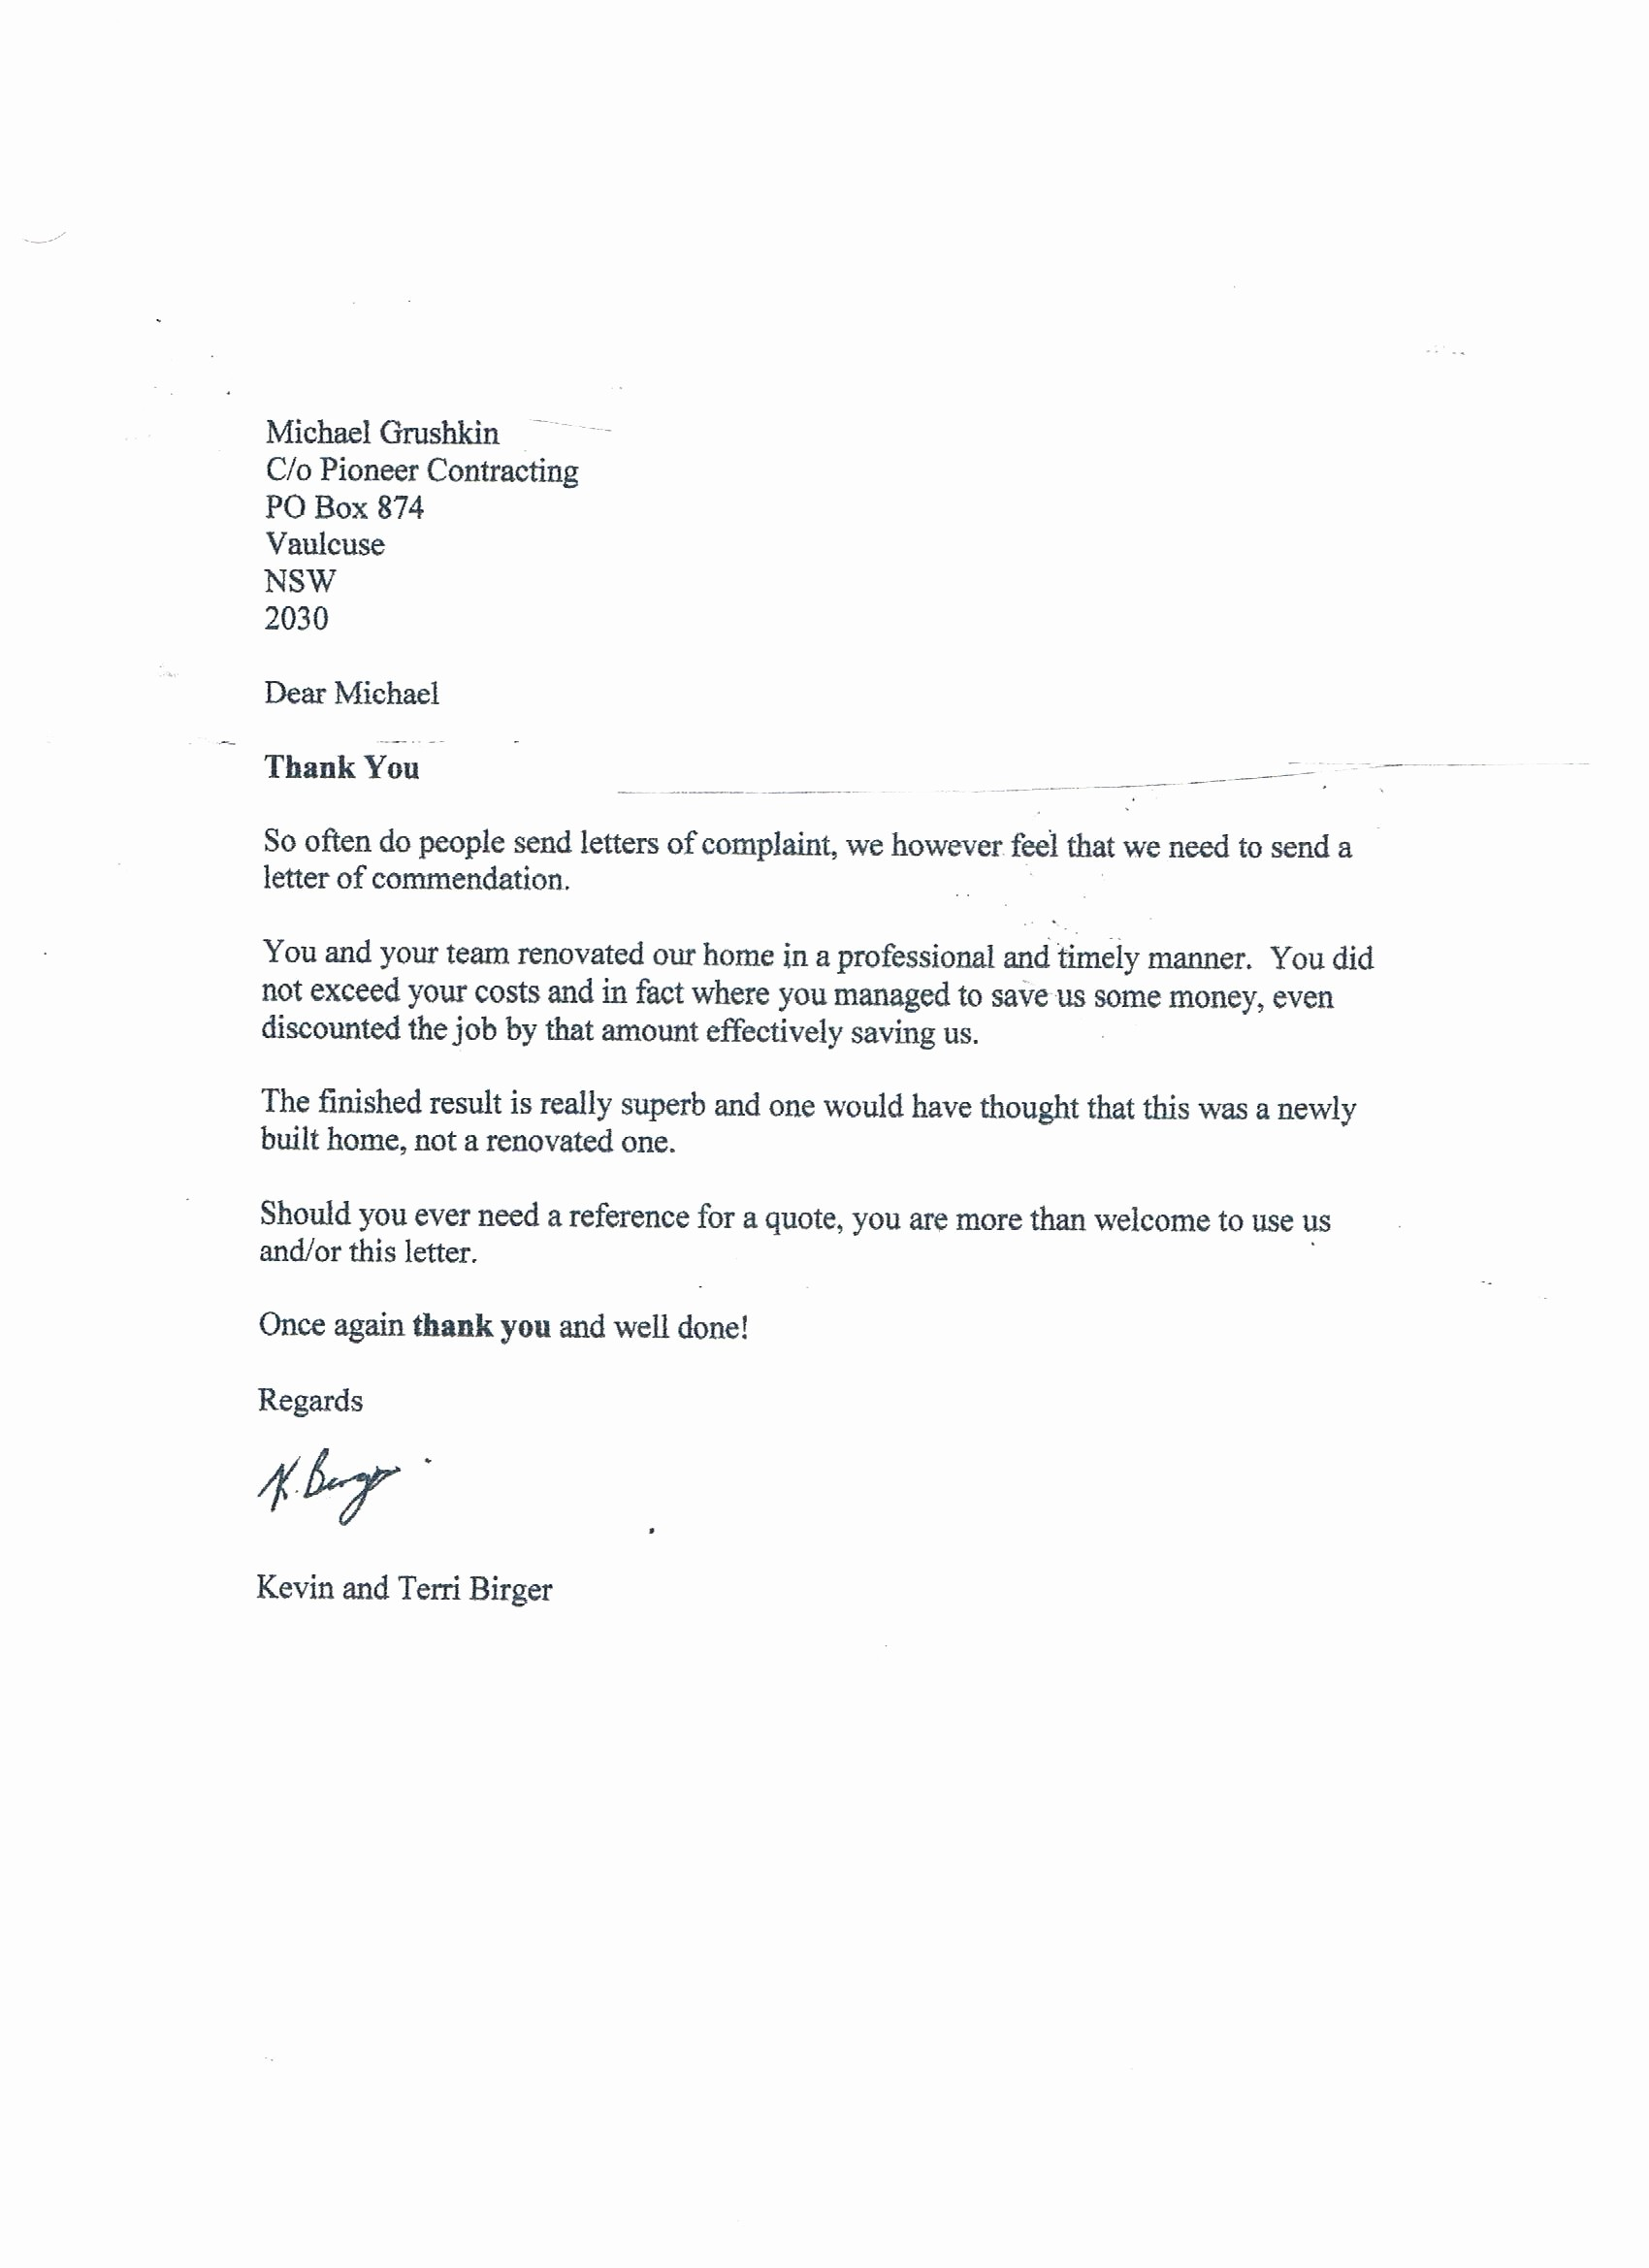 Thank You Letter for Reference Inspirational Pioneer Contracting